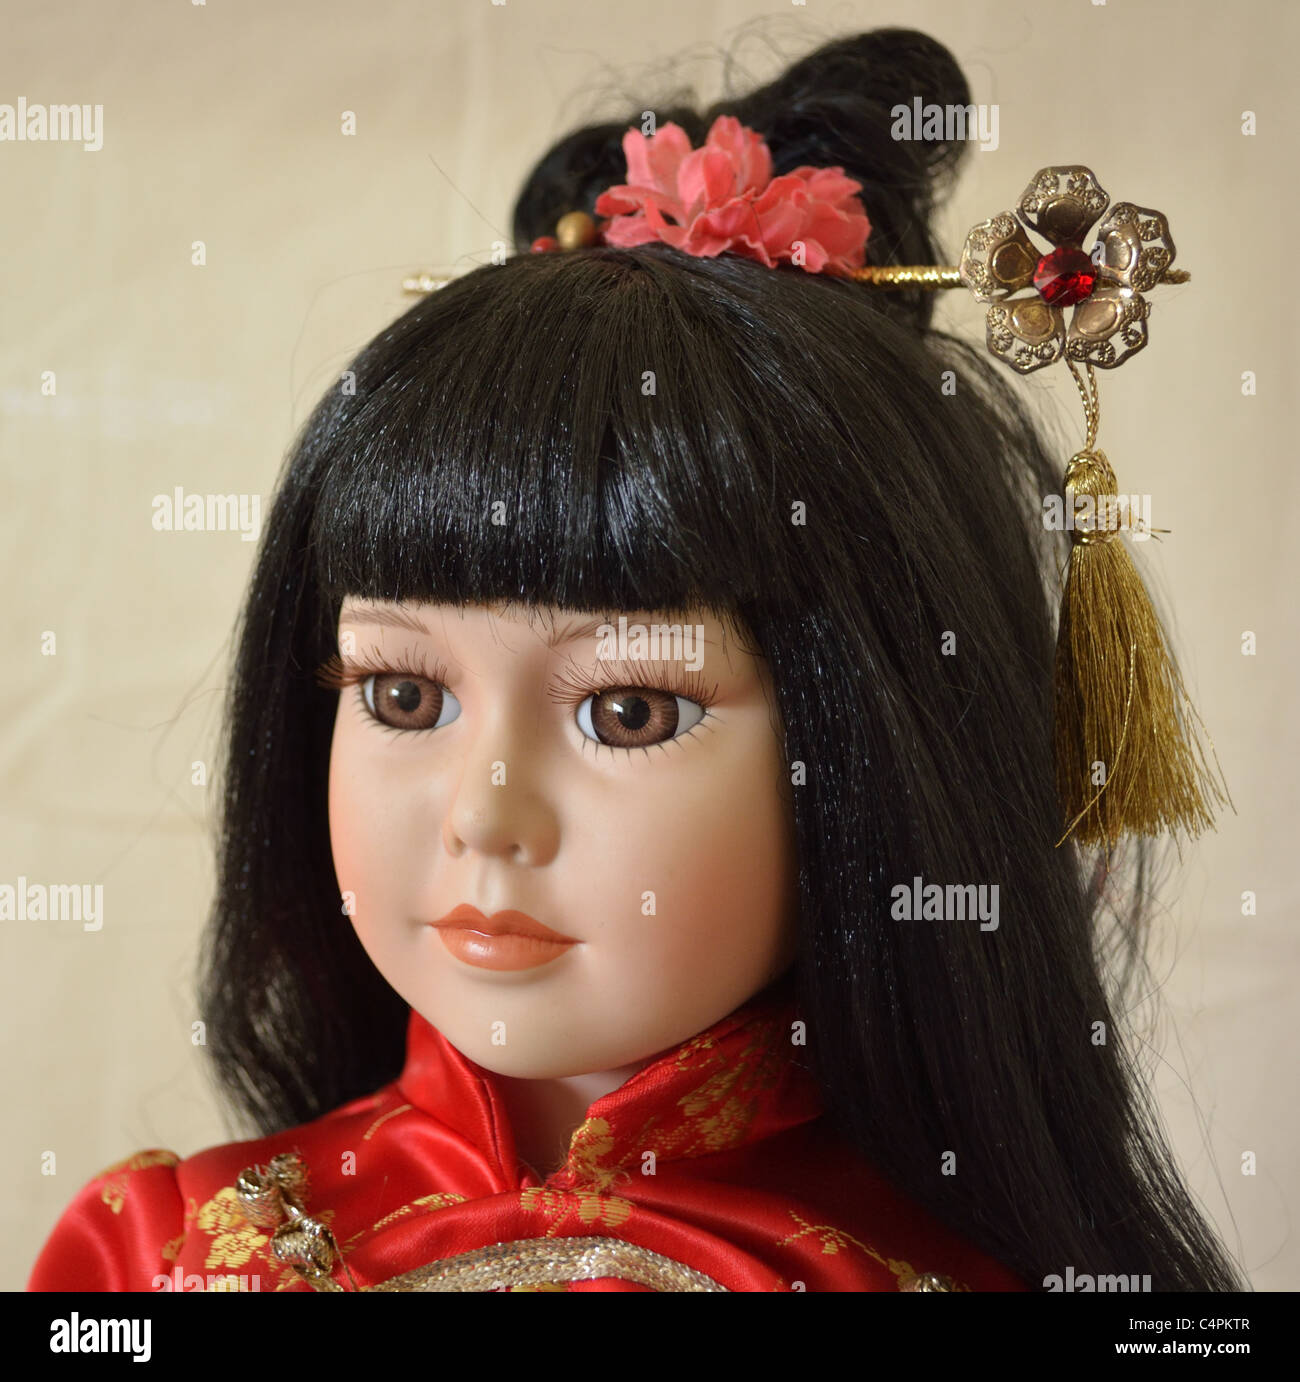 Chinese Doll Dolls